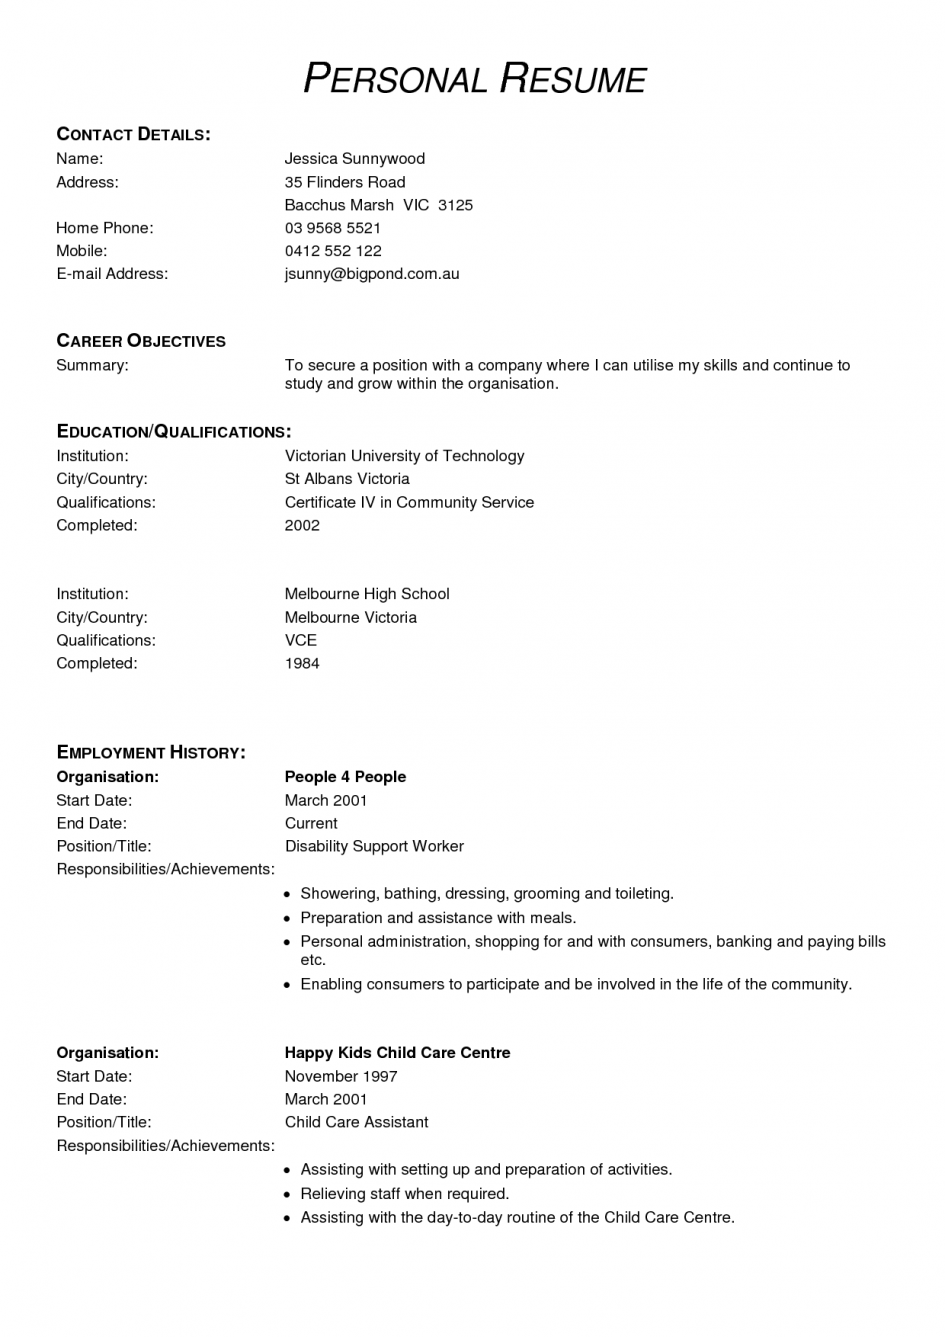 No Experience Resume Custom Pin By Carrie Skouby On Resume Help In 48 Pinterest Sample